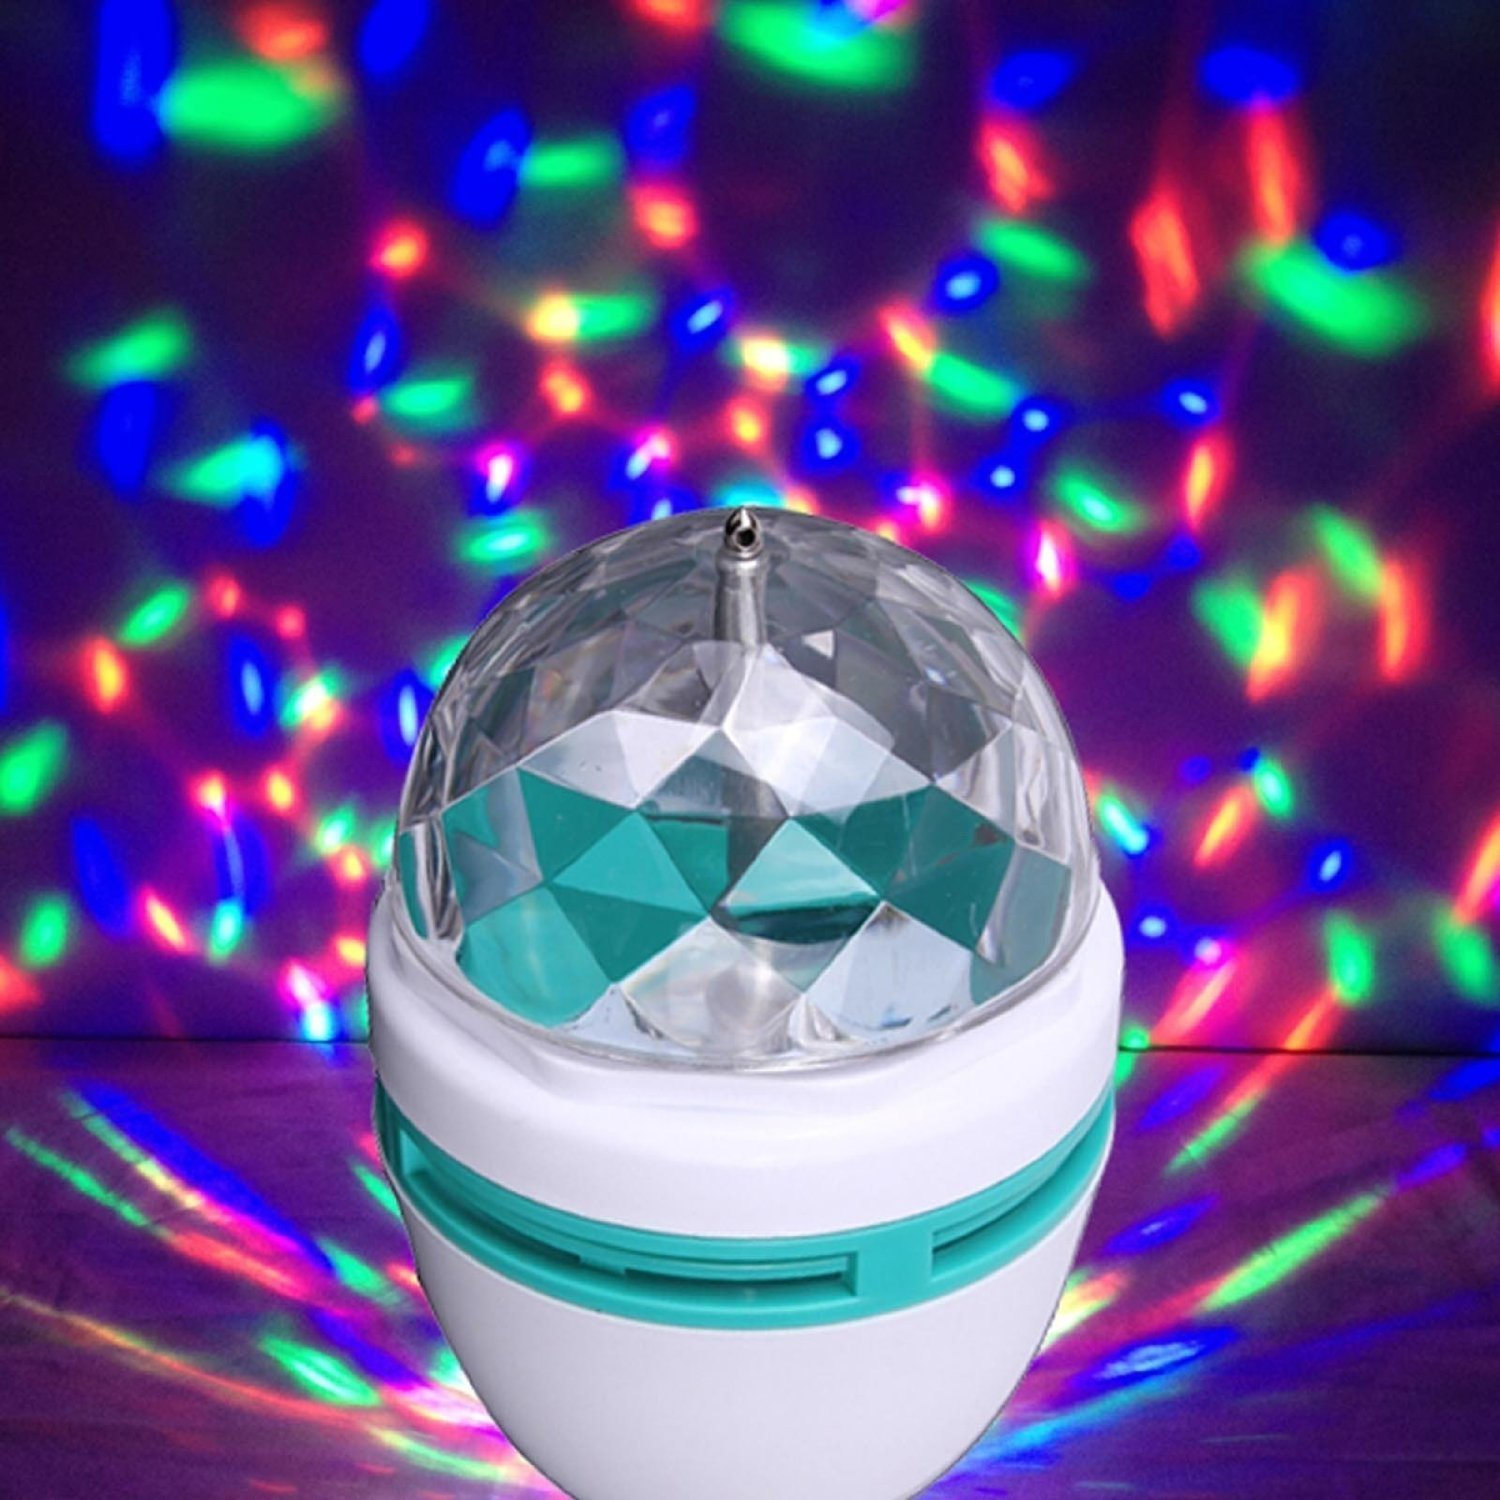 Wall night lamp online india - Disco Light Mini Party Lamp Led 3w Effect